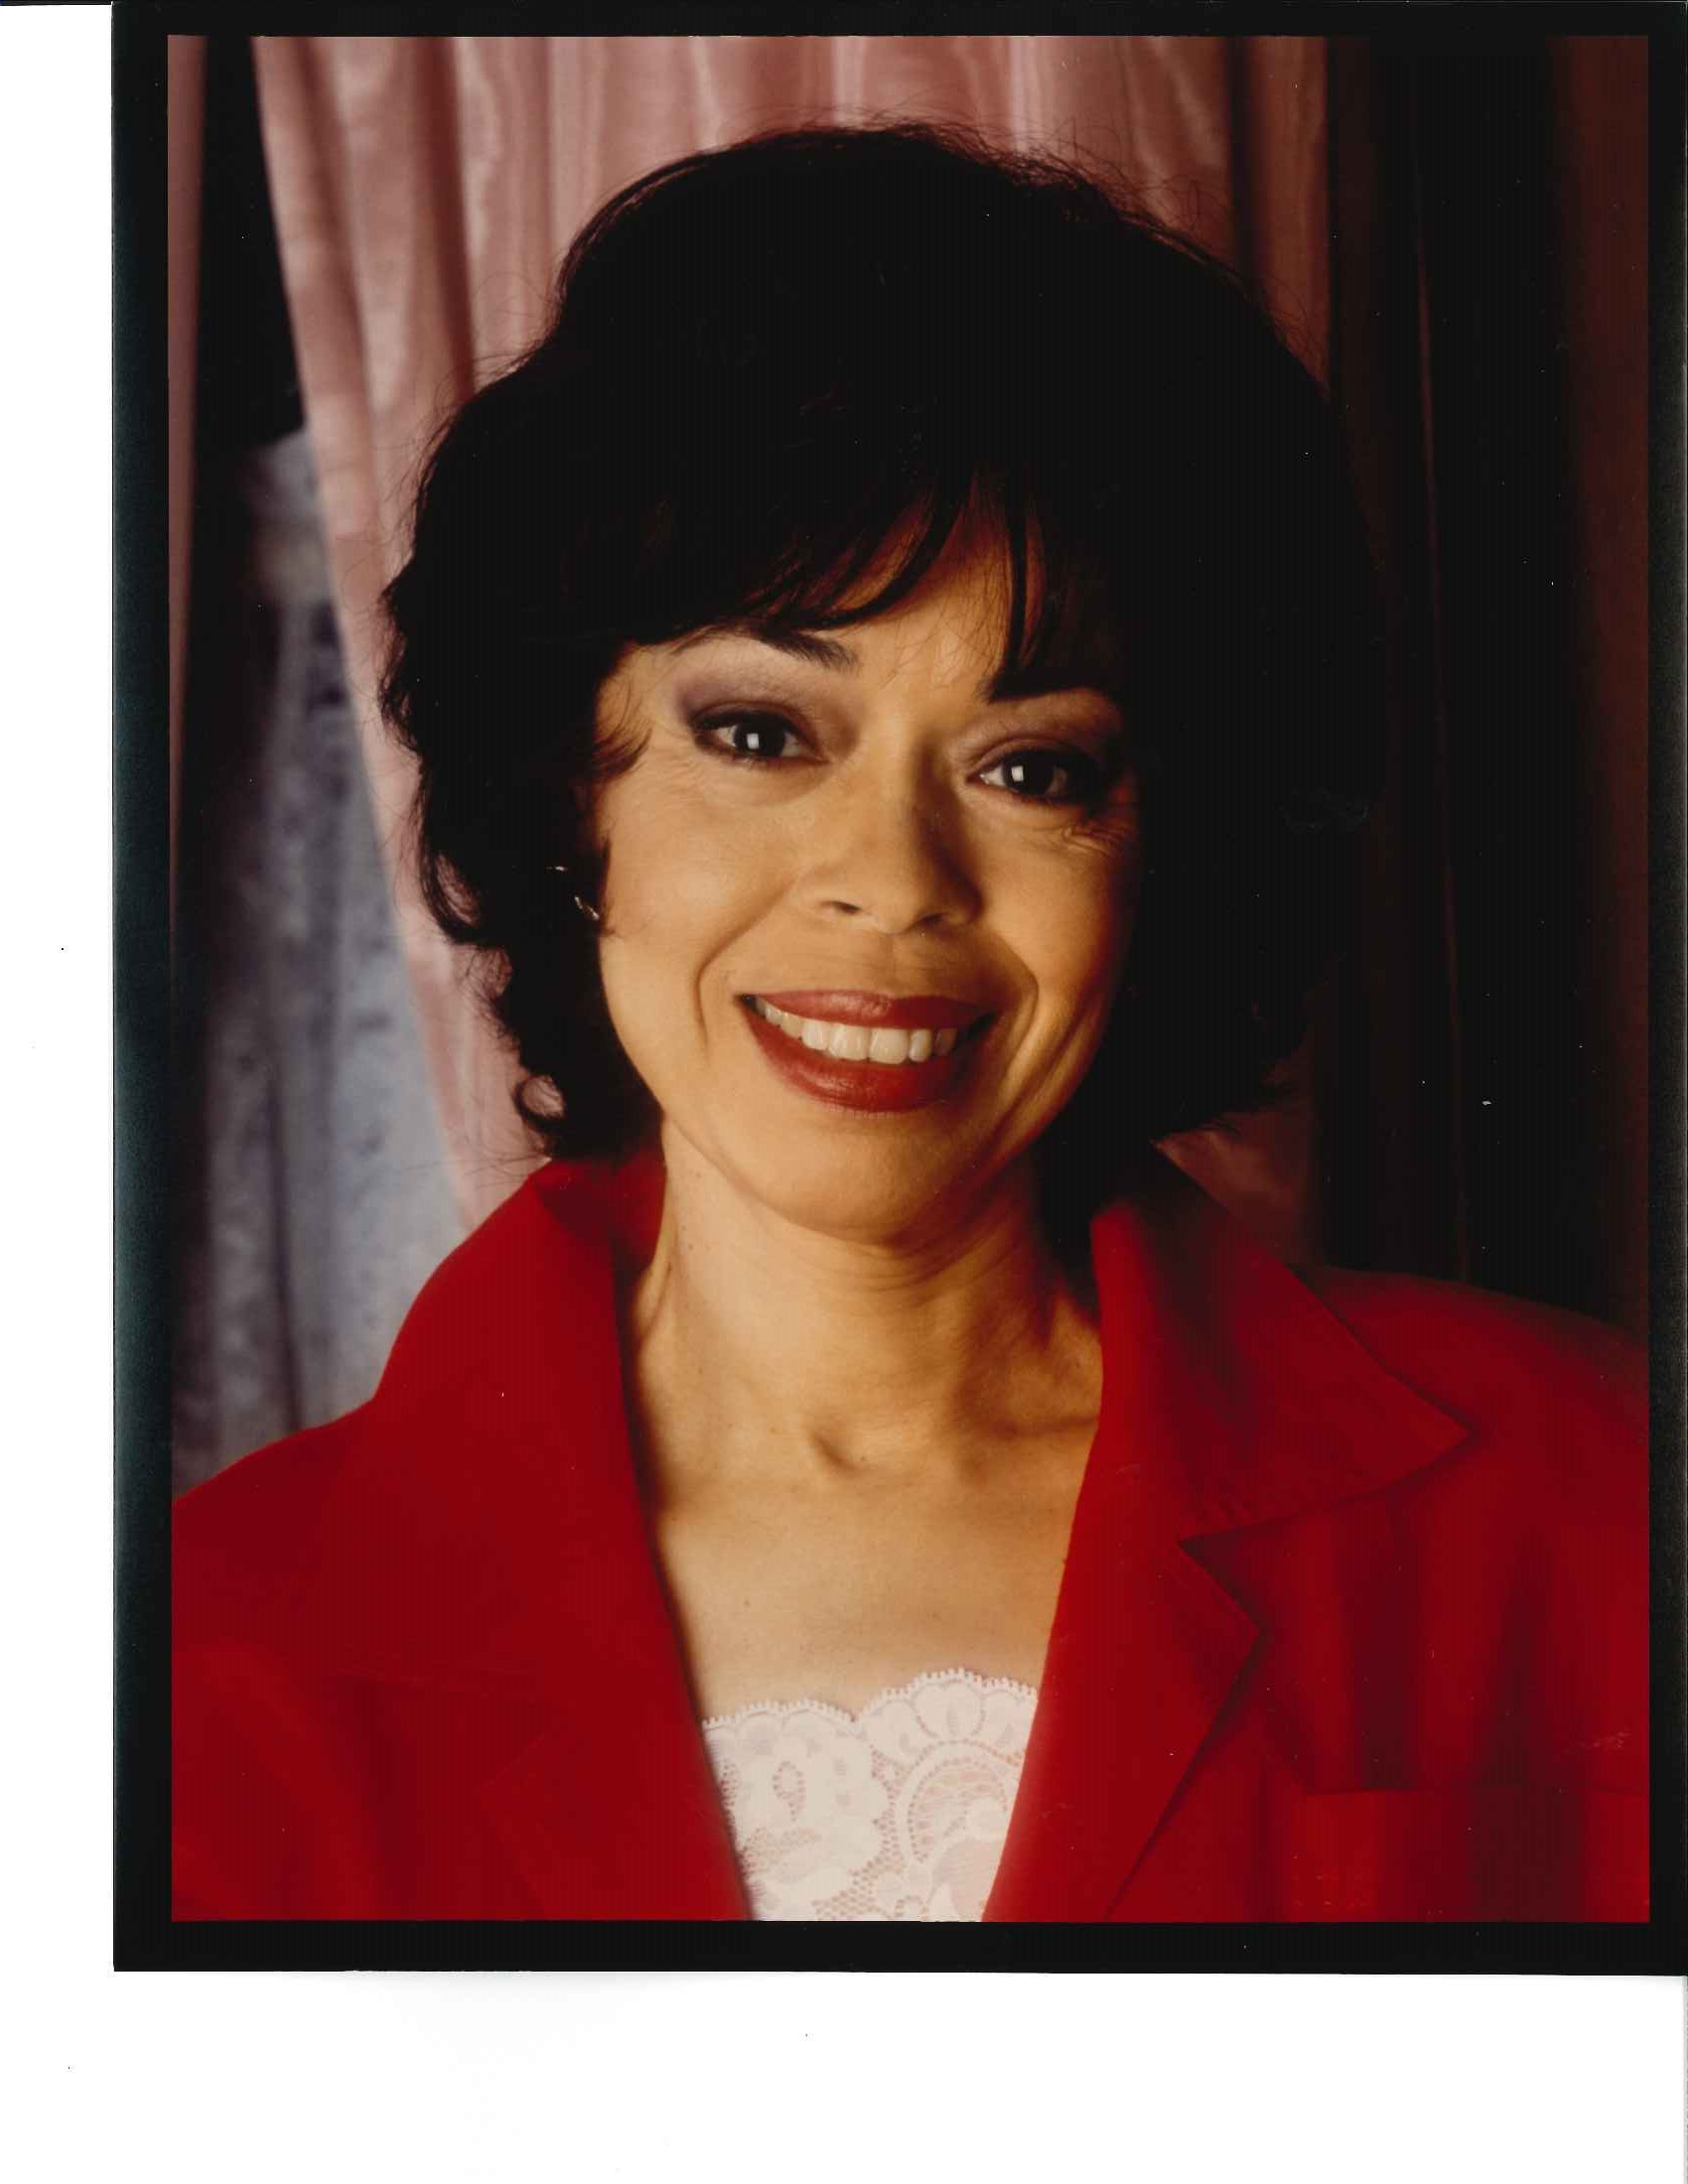 Gail Wyatt, PhD Co-Chair - Dr. Wyatt a Clinical Psychologist, board certified Sex Therapist and Professor of Psychiatry and Bio-behavioral Sciences at The Semel Institute for Neuroscience and Behavior at UCLA.She is a graduate of Fisk University and received her doctorate at UCLA. For the first 17 years of her career, Dr. Wyatt was the first ethnic minority to receive training as a sexologist. She received a prestigious NIMH Research Scientist Career Development Award to develop culturally congruent measures, conceptual frameworks and interventions to capture sexual decision making among ethnic minority men and women within a socio-cultural framework. She was the first African American woman in California to receive a license to practice Psychology, and the first African American woman Ph.D. to reach full Professor in a school of Medicine. Her research examines the consensual and abusive sexual relationships of women and men, the biological and behavioral effects of these experiences on their psychological well-being and the cultural context of risks for STIs and HIV. She has conducted national and international research funded by the NIMH, NIDA, State and private funders since 1980. Dr. Wyatt has been selected as a senior research fellow by the COBB Institute for the National Medical Association.LEARN MORE HERE